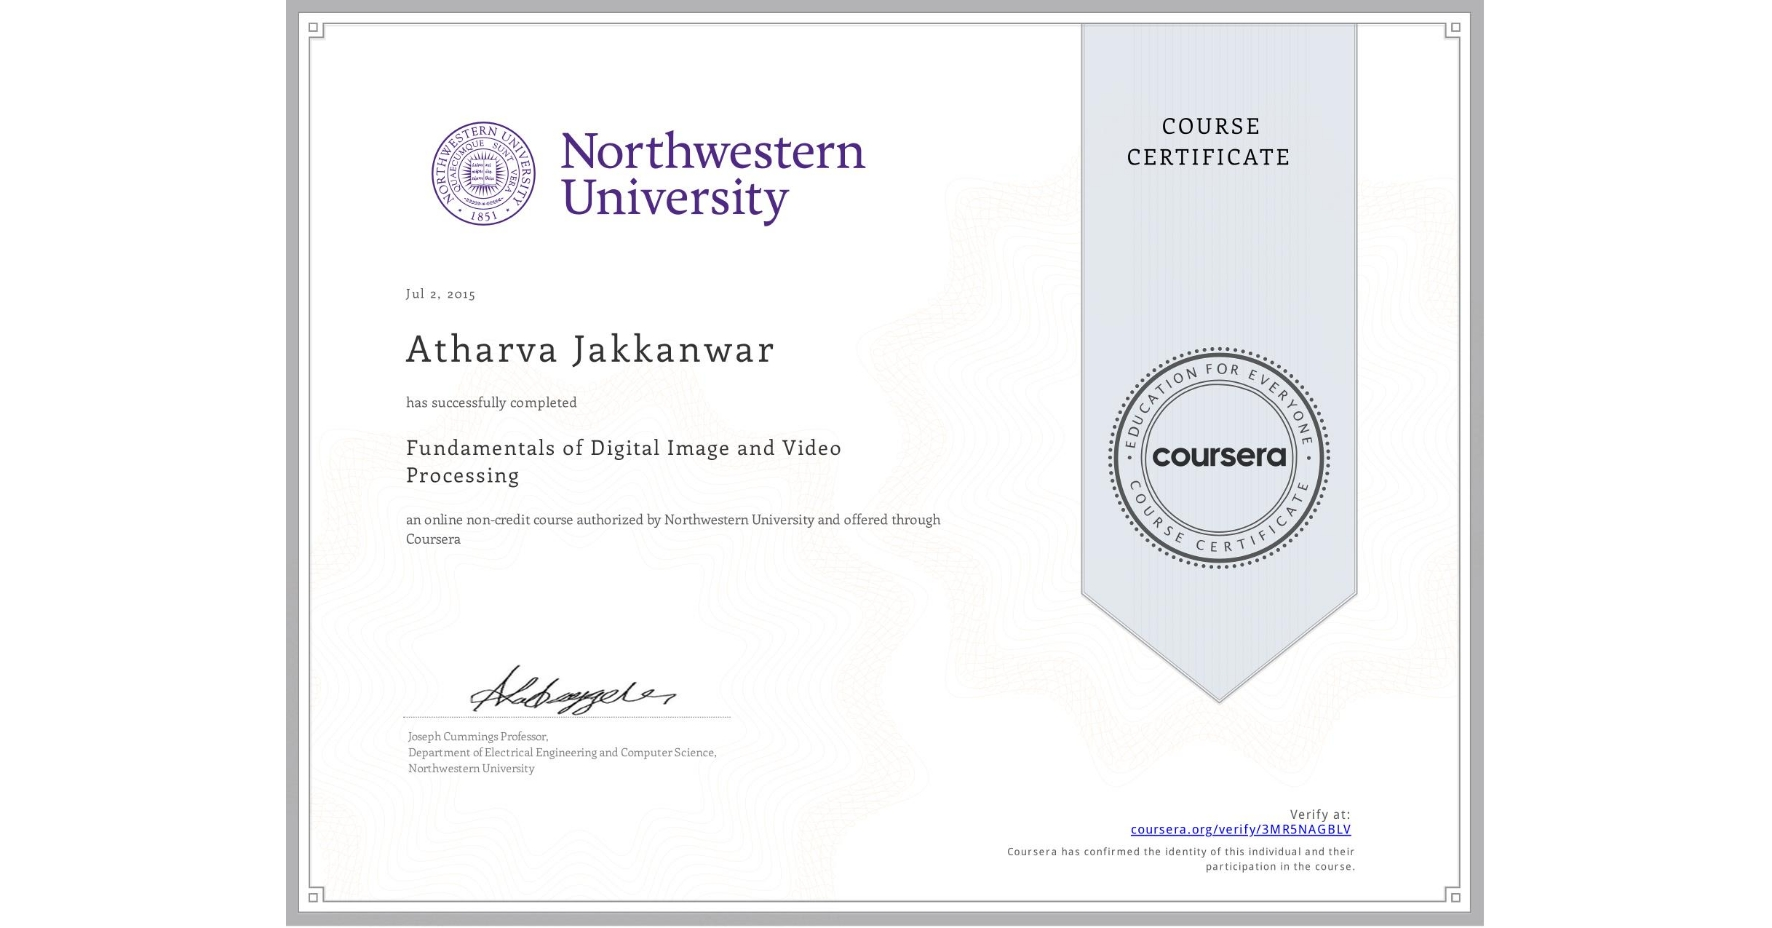 View certificate for Atharva Jakkanwar, Fundamentals of Digital Image and Video Processing, an online non-credit course authorized by Northwestern University and offered through Coursera